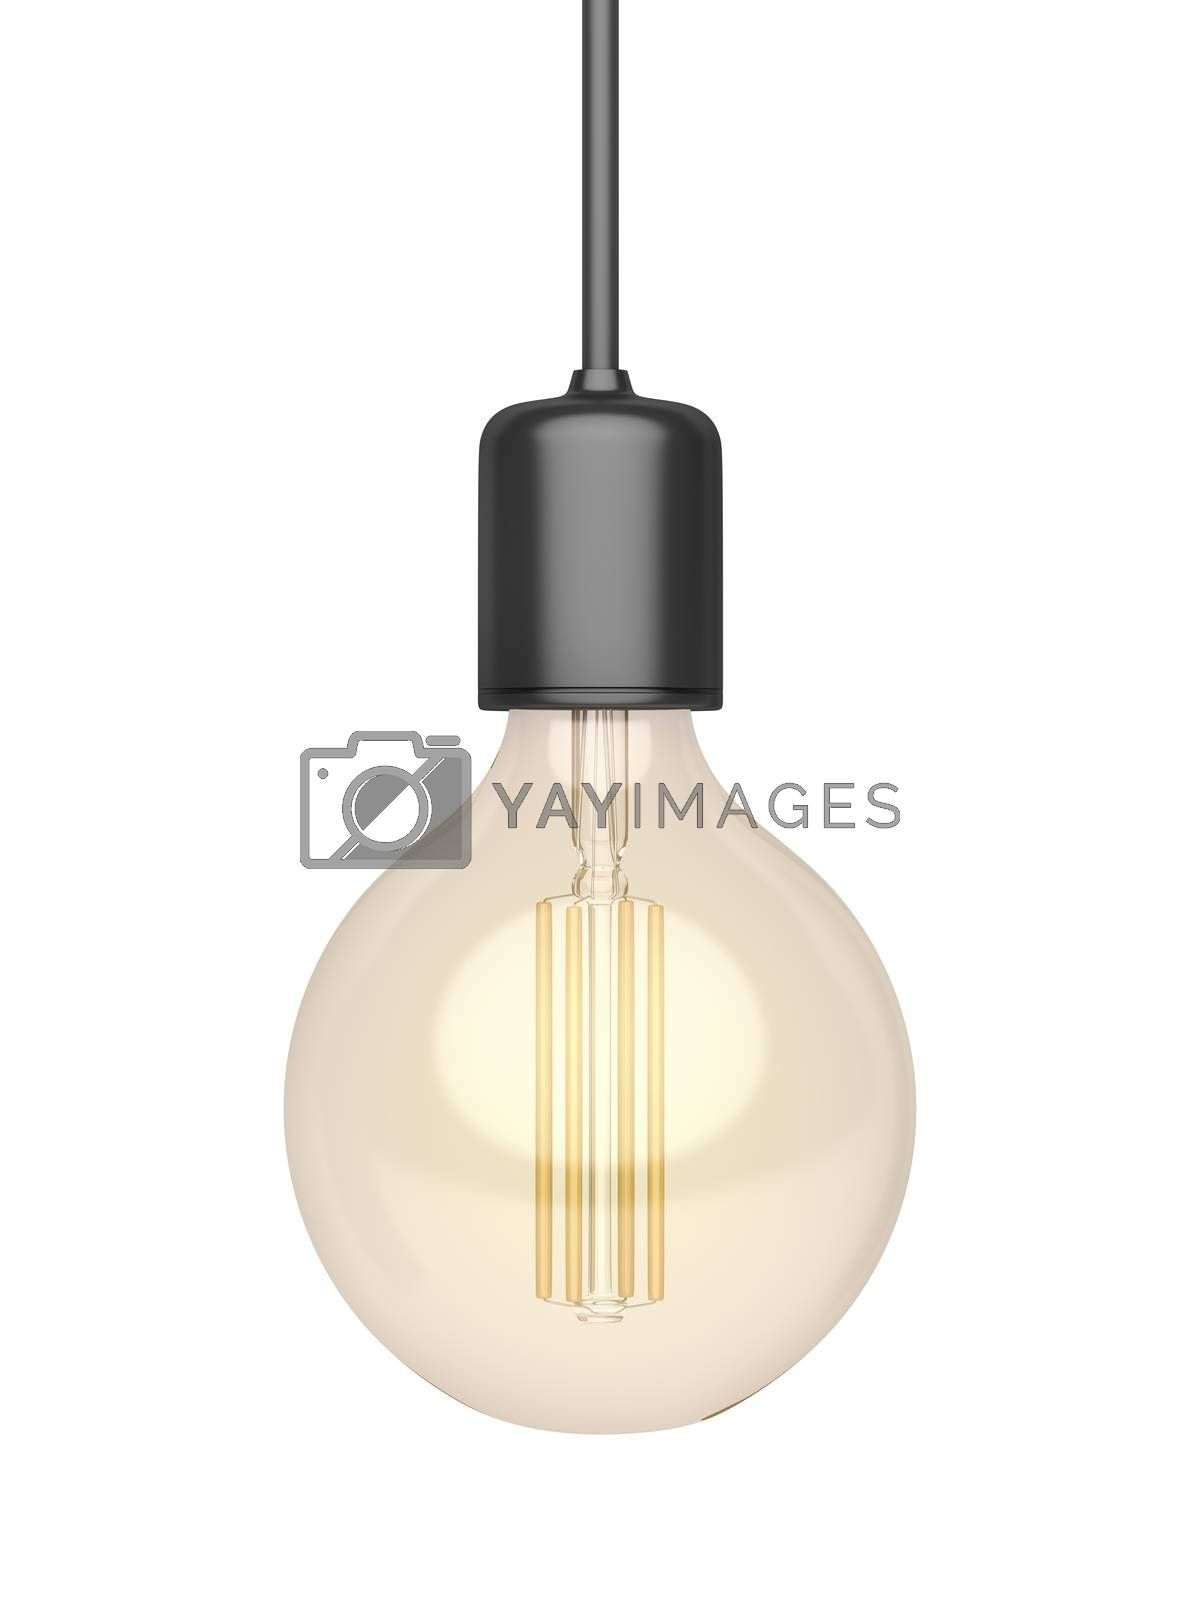 Decorative LED light bulb isolated on white background